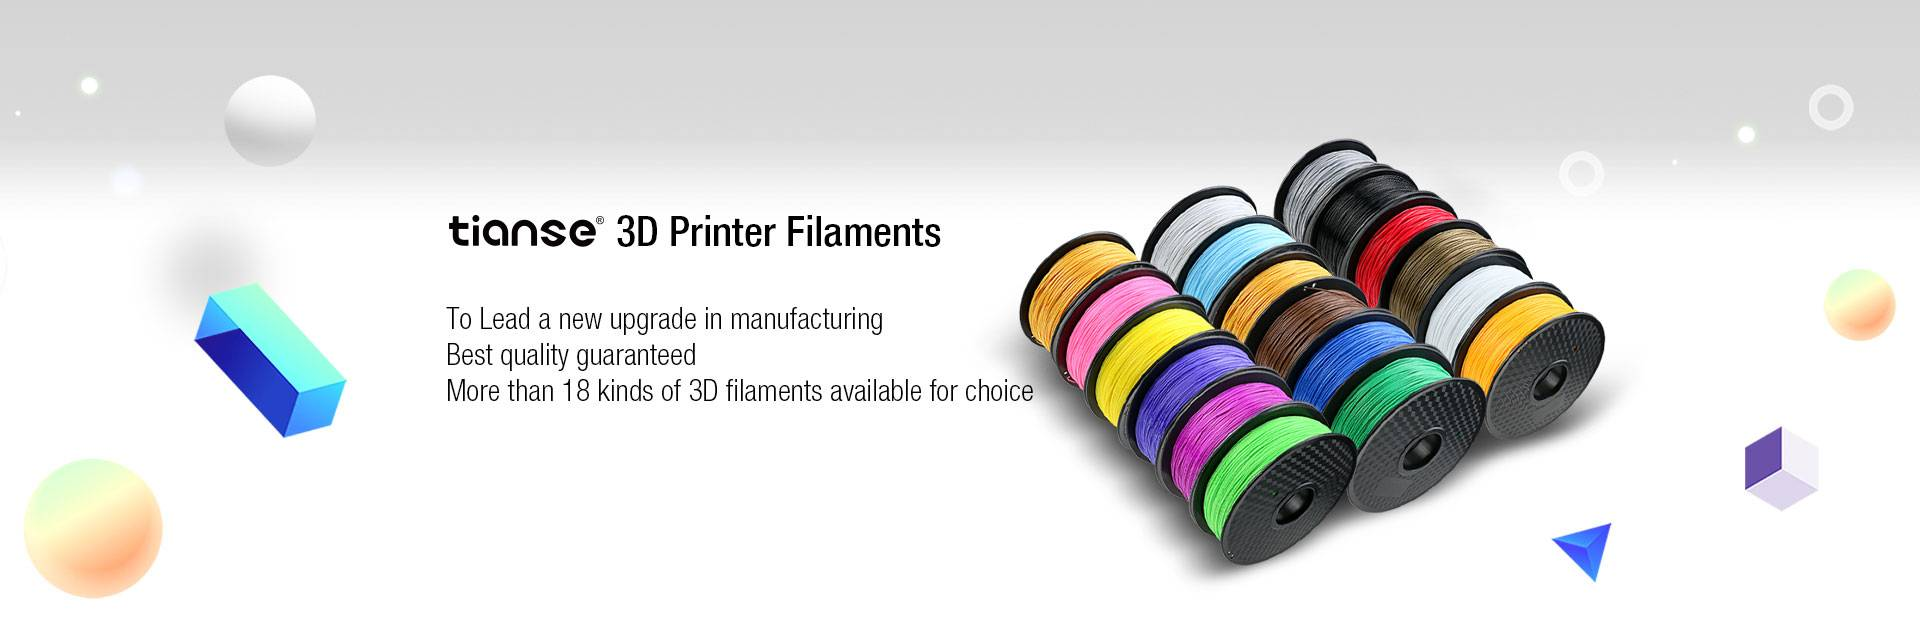 3D Printer Filament Banner